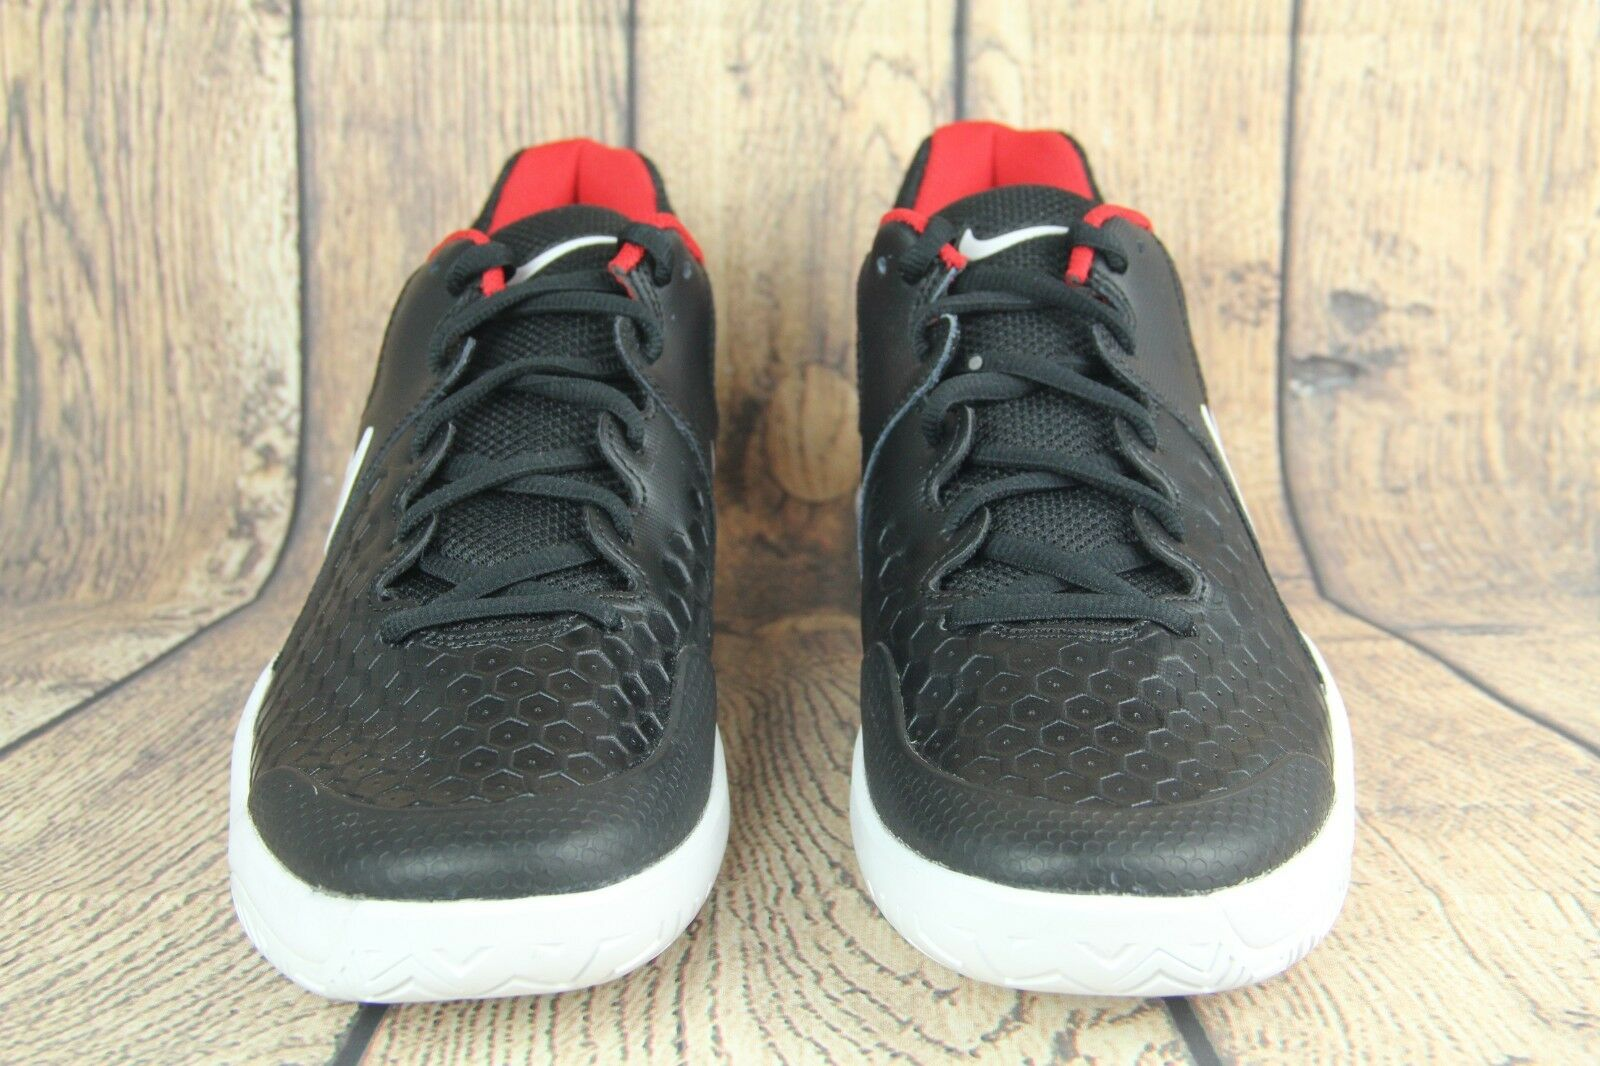 New Nike Mens Air Zoom Resistance Tennis Shoes Black 918194-001 Size 11.5